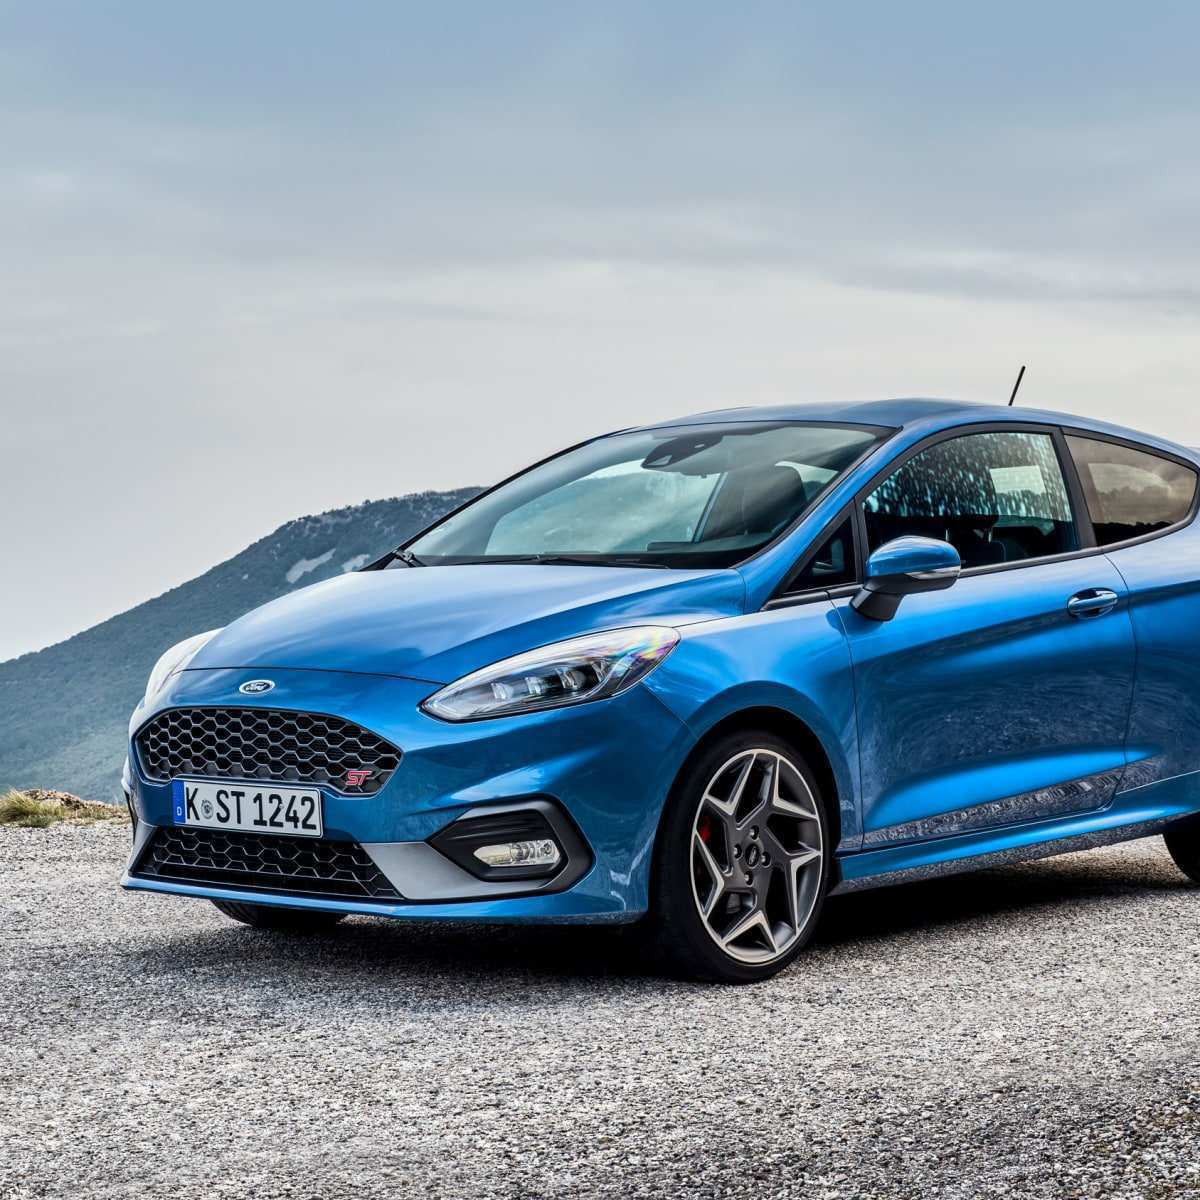 70 The Best 2019 Ford Fiesta Release Date And Concept